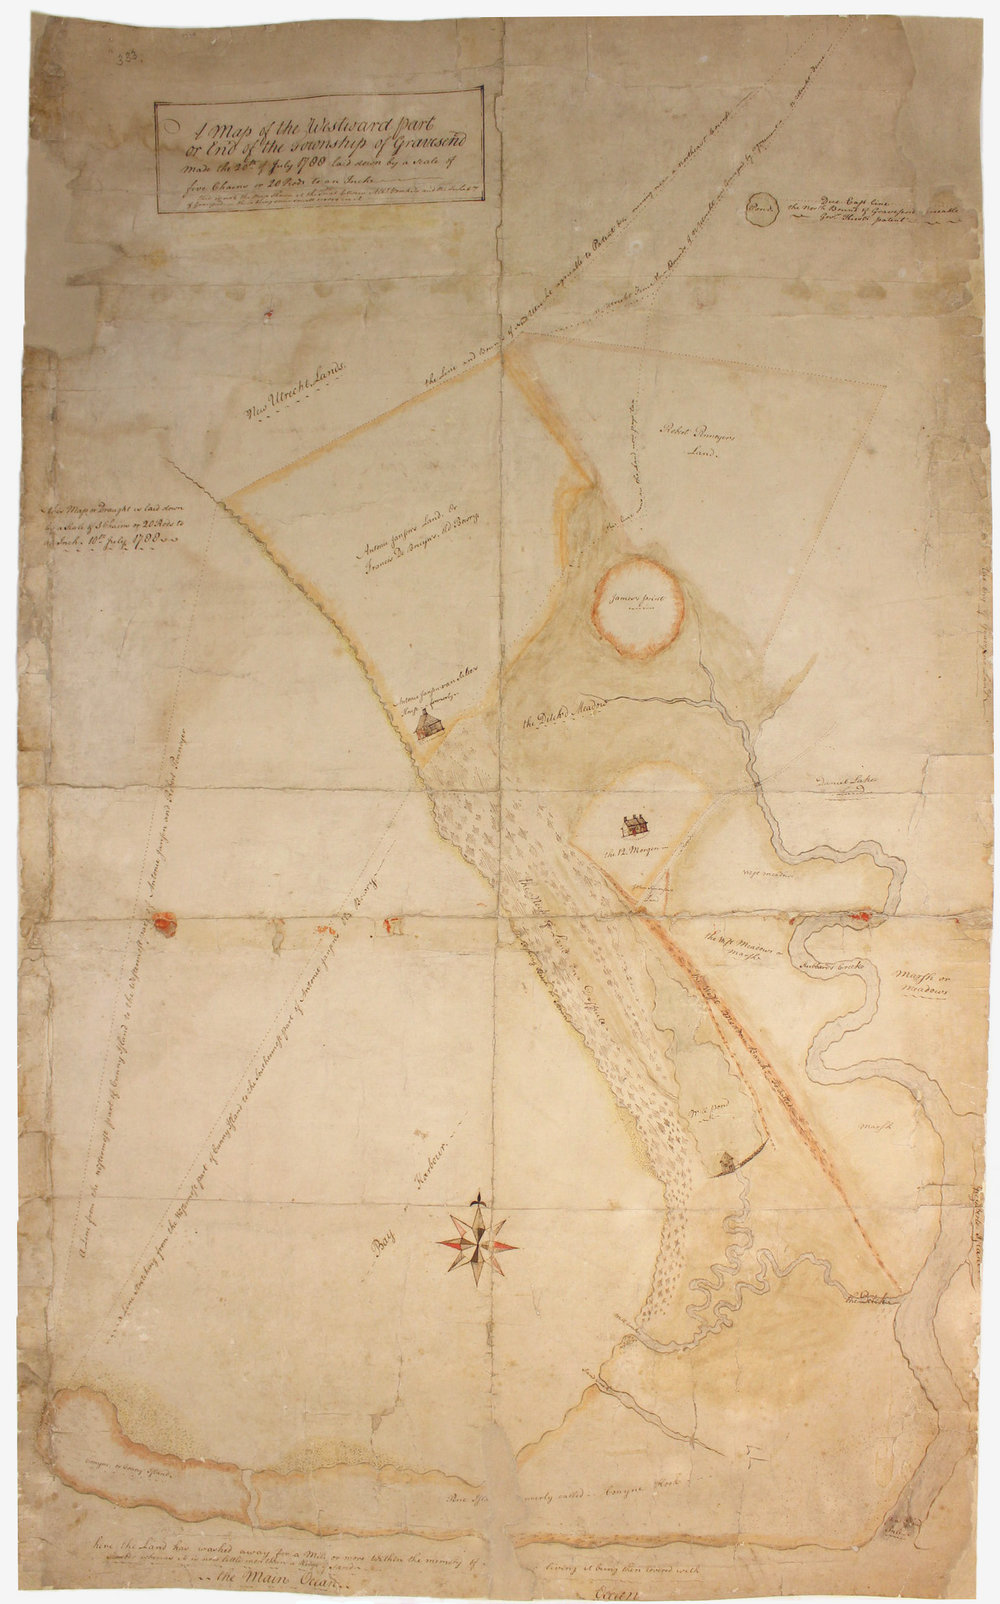 1788 map of Gravesend, Brooklyn, after treatment, recto.